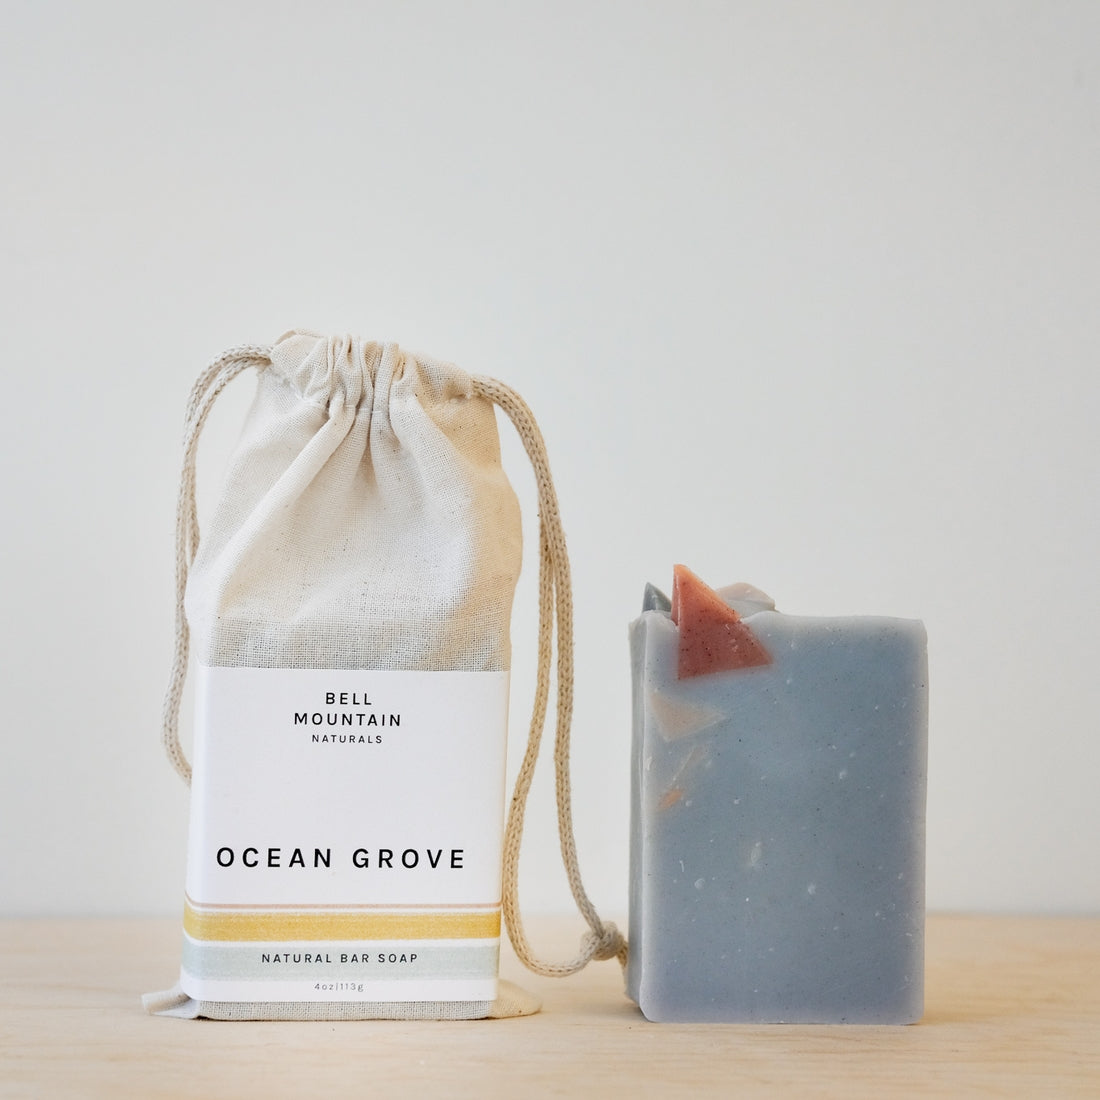 Bell Mountain Naturals: Ocean Grove Soap